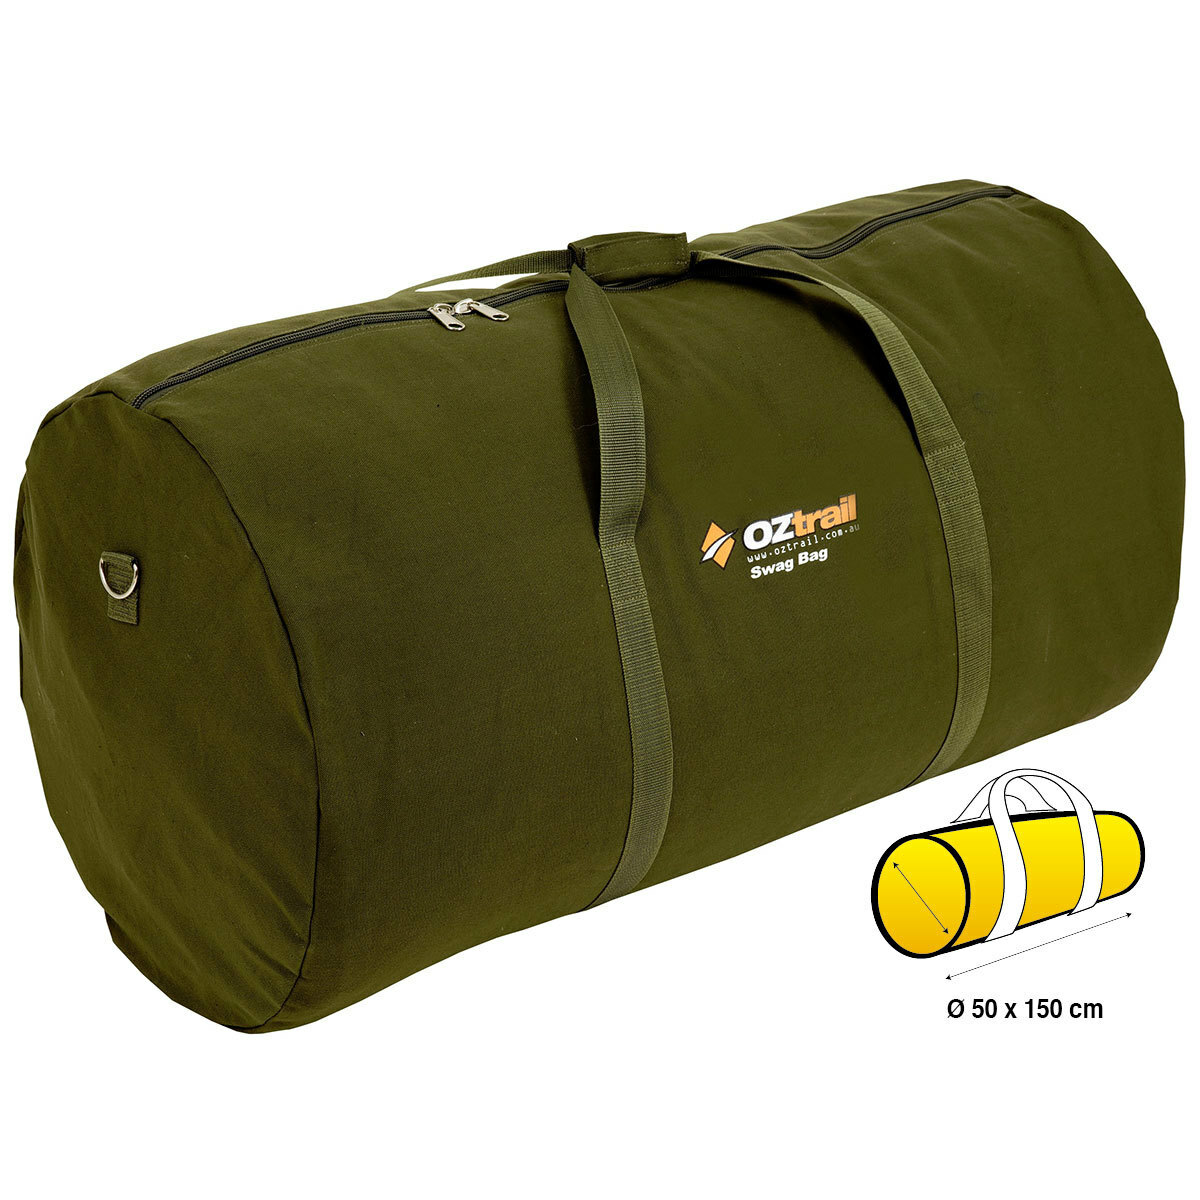 5899ed3fe39b OZtrail Canvas Double Swag Bag